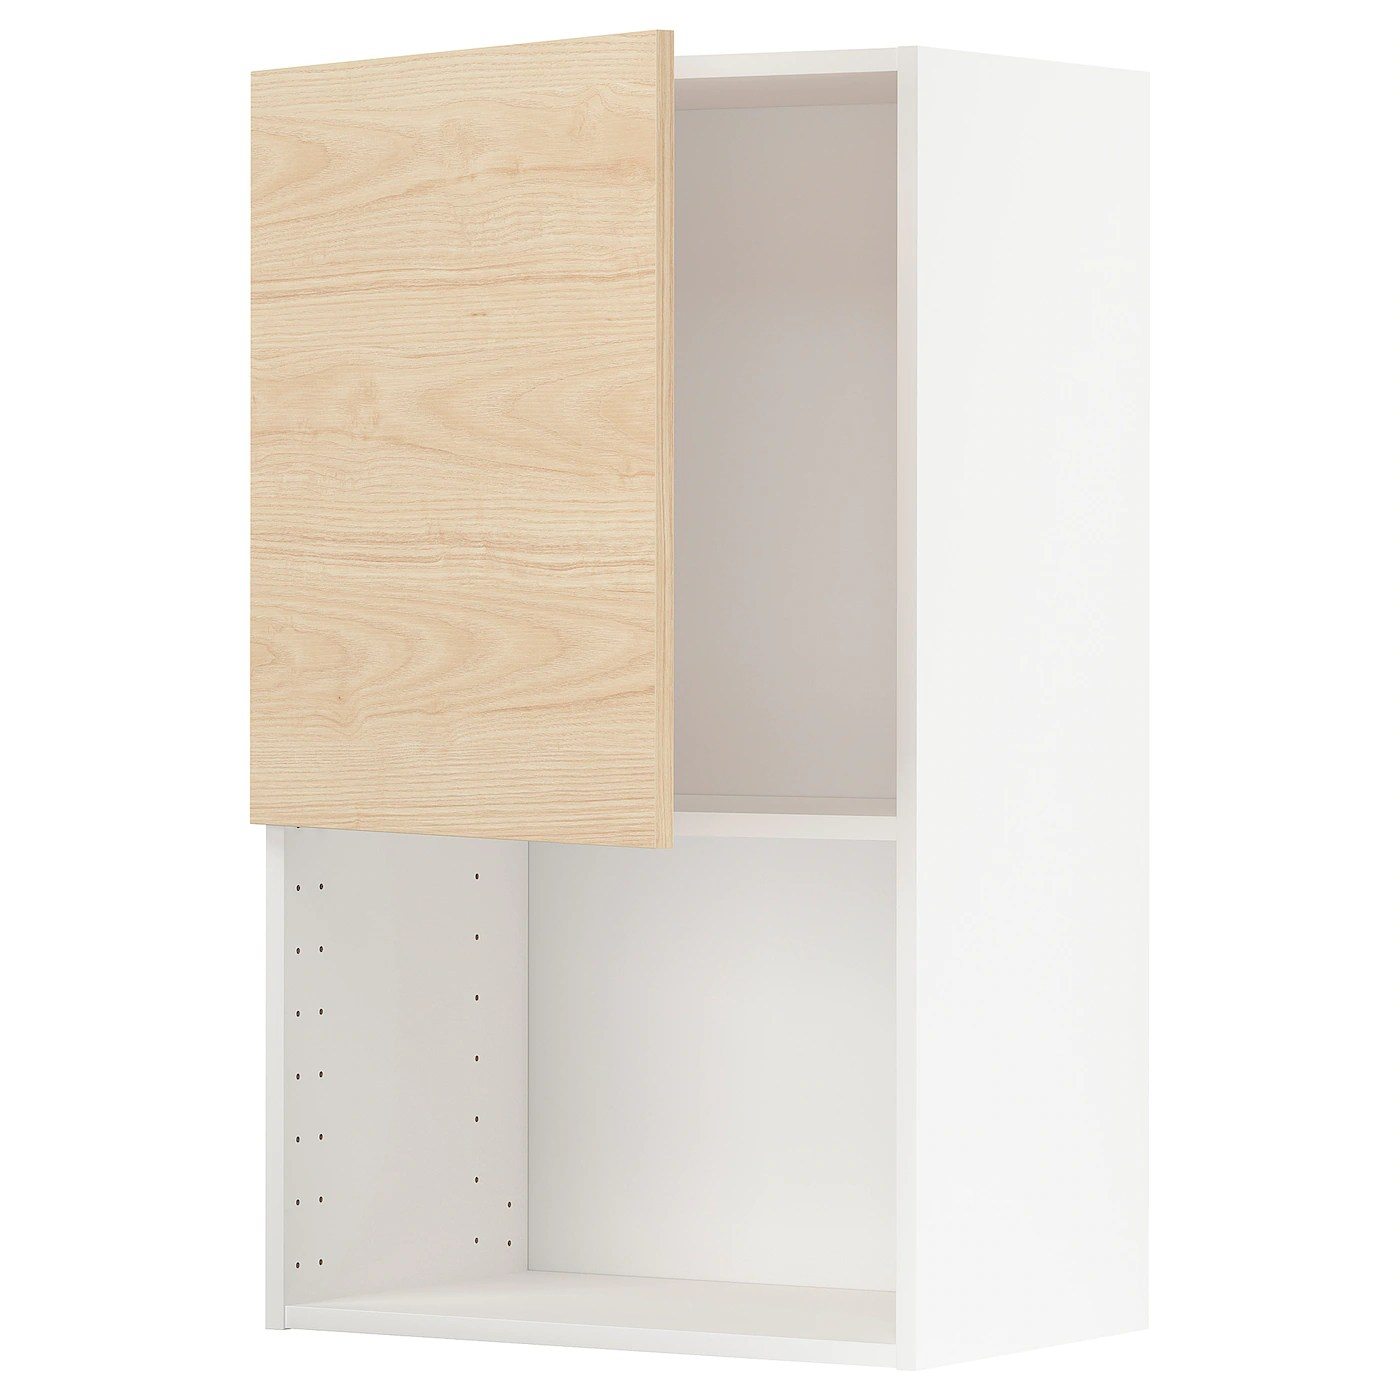 metod wall cabinet for microwave oven white askersund light ash effect 60x37x100 cm